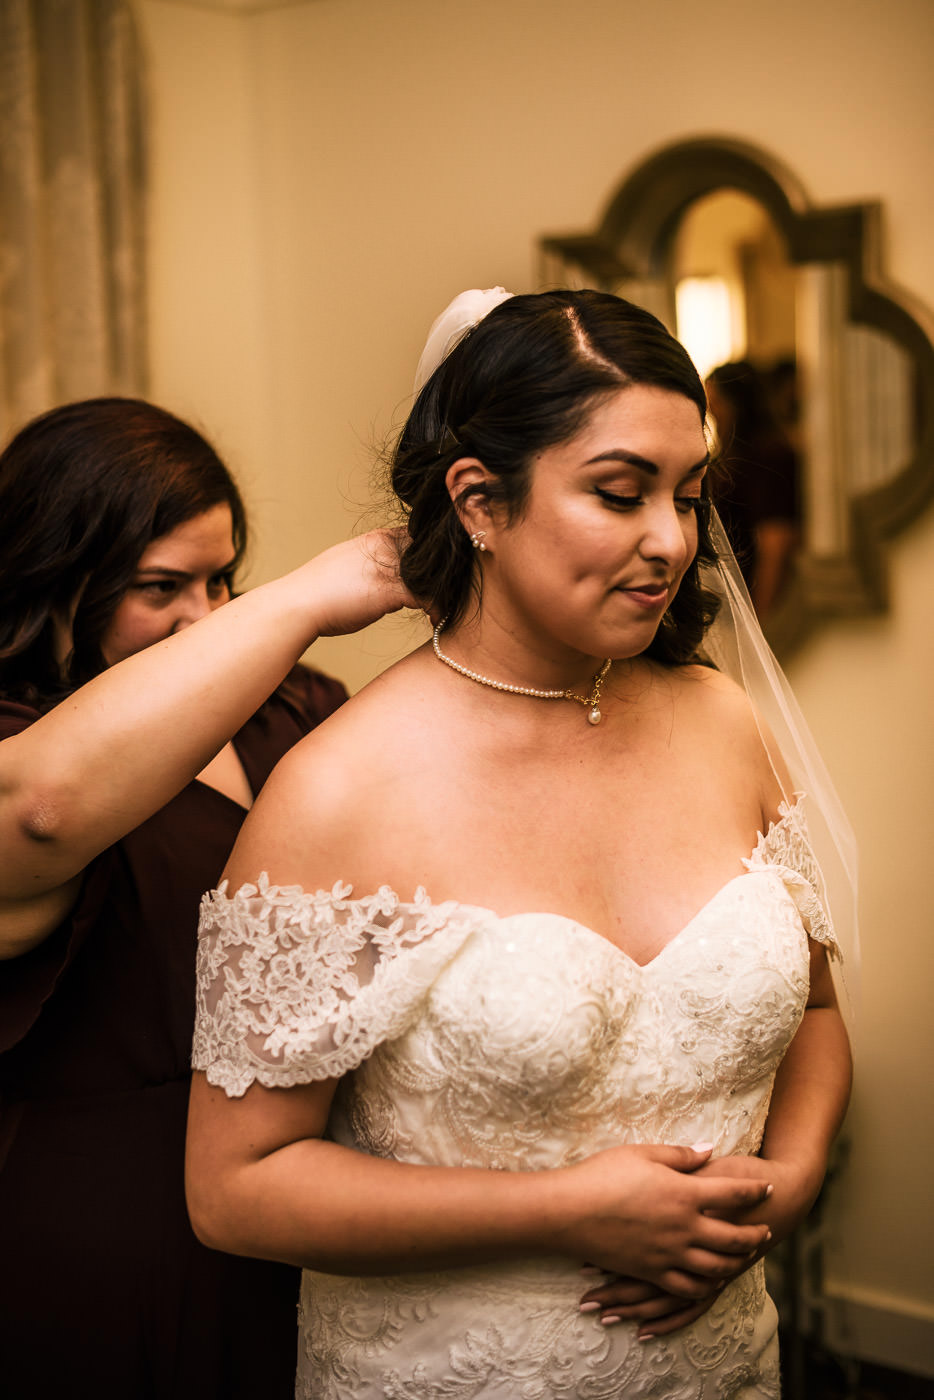 Bridesmaid helps the bride put on her necklace.